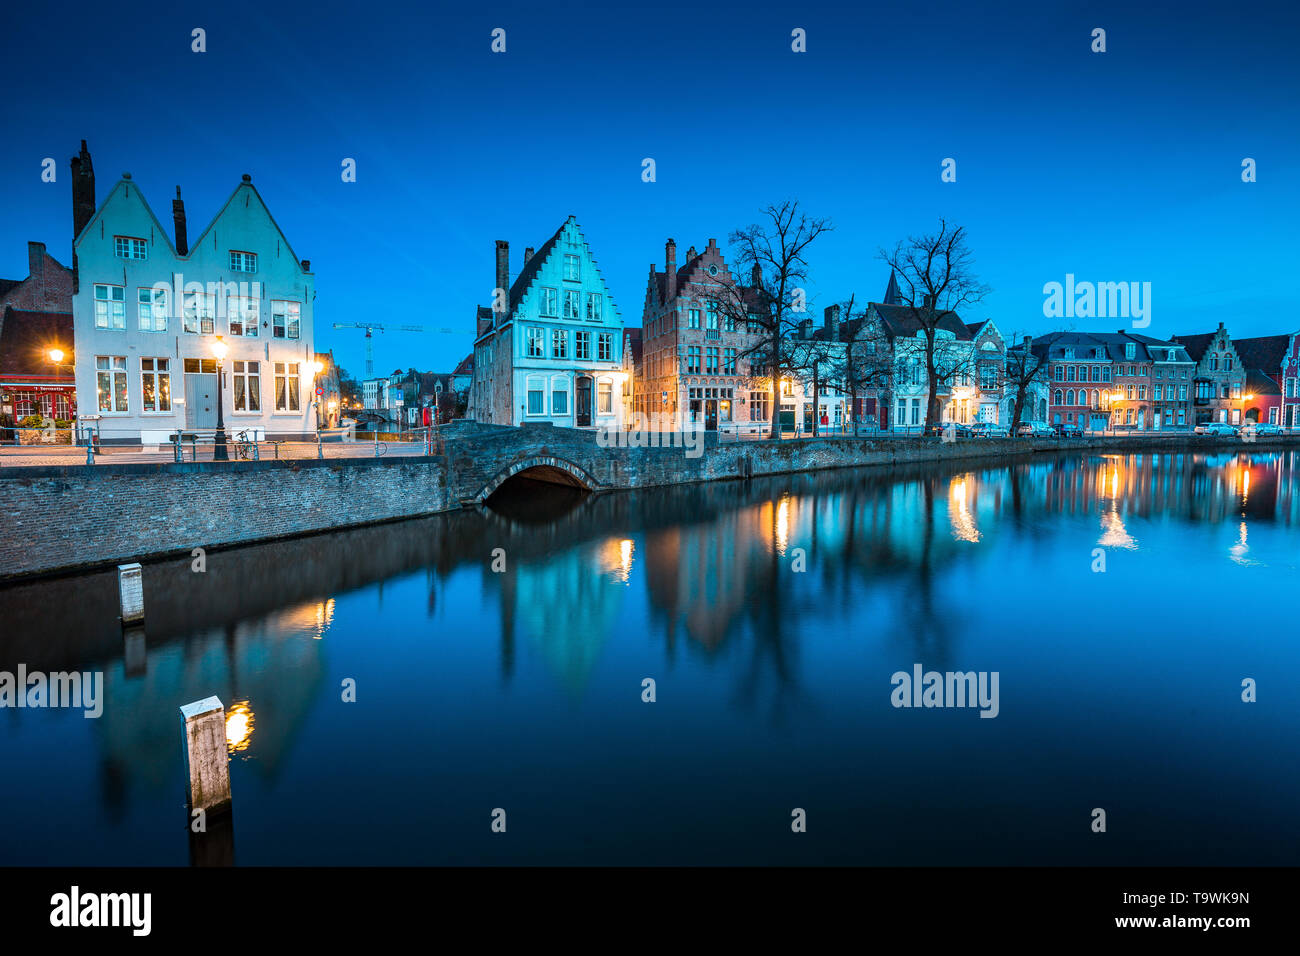 Beautiful twilight view of the historic city center of Brugge with old houses along famous Potterierei canal illuminated during blue hour at dusk, Bru - Stock Image